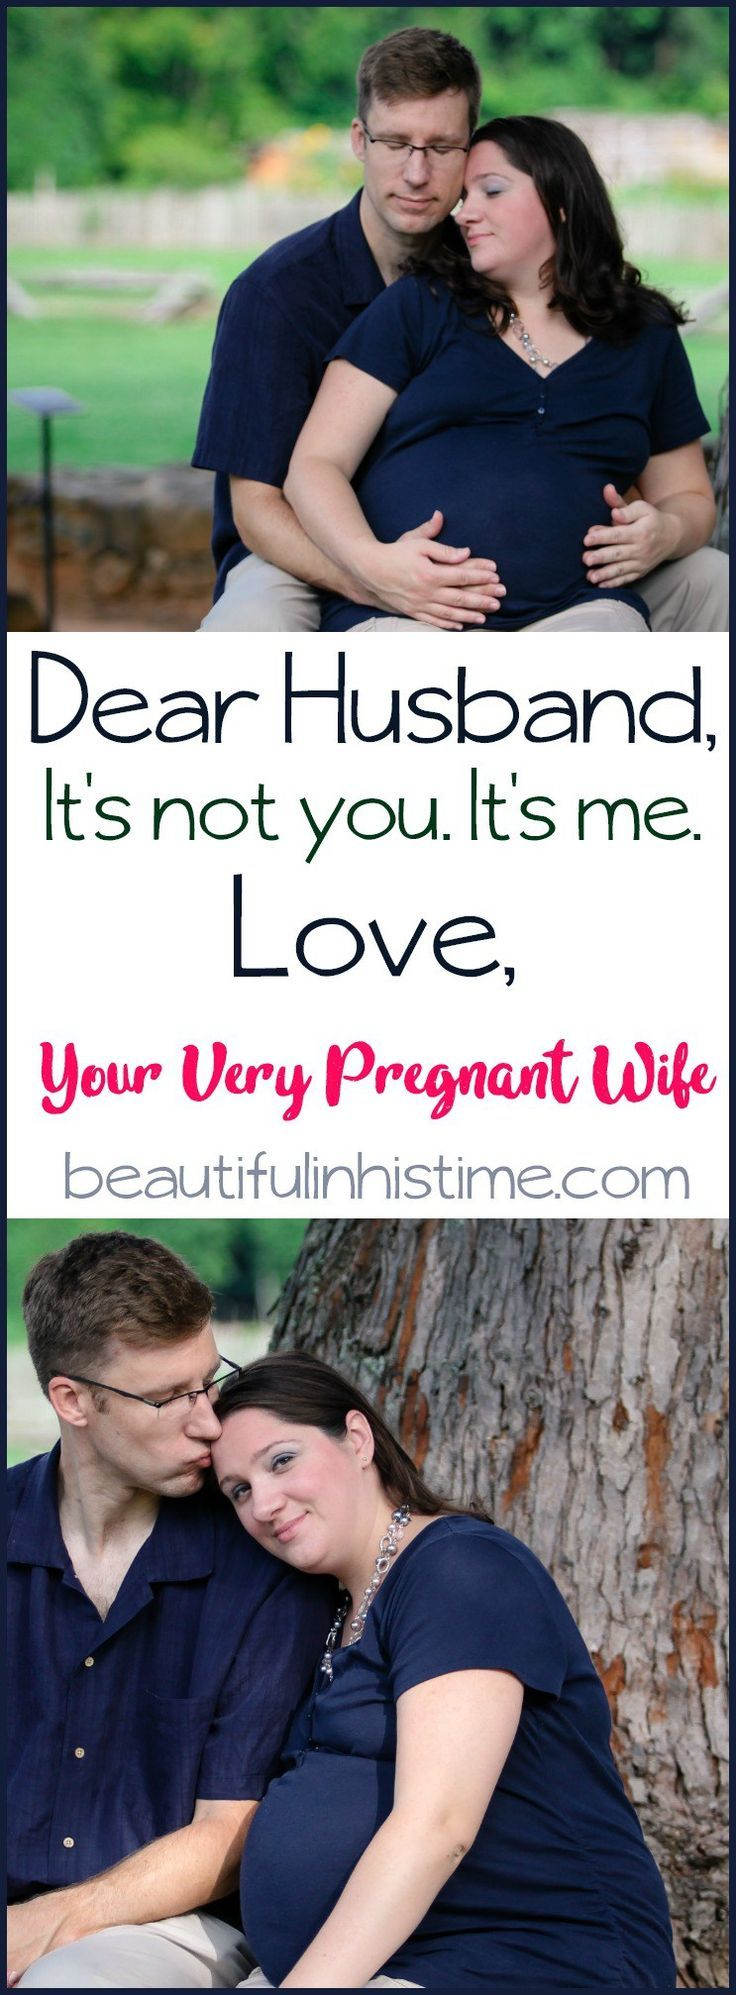 Dear Husband Love Your 36 Weeks Pregnant Wife 36 Weeks Pregnant Pregnant Wife 35 Weeks Pregnant